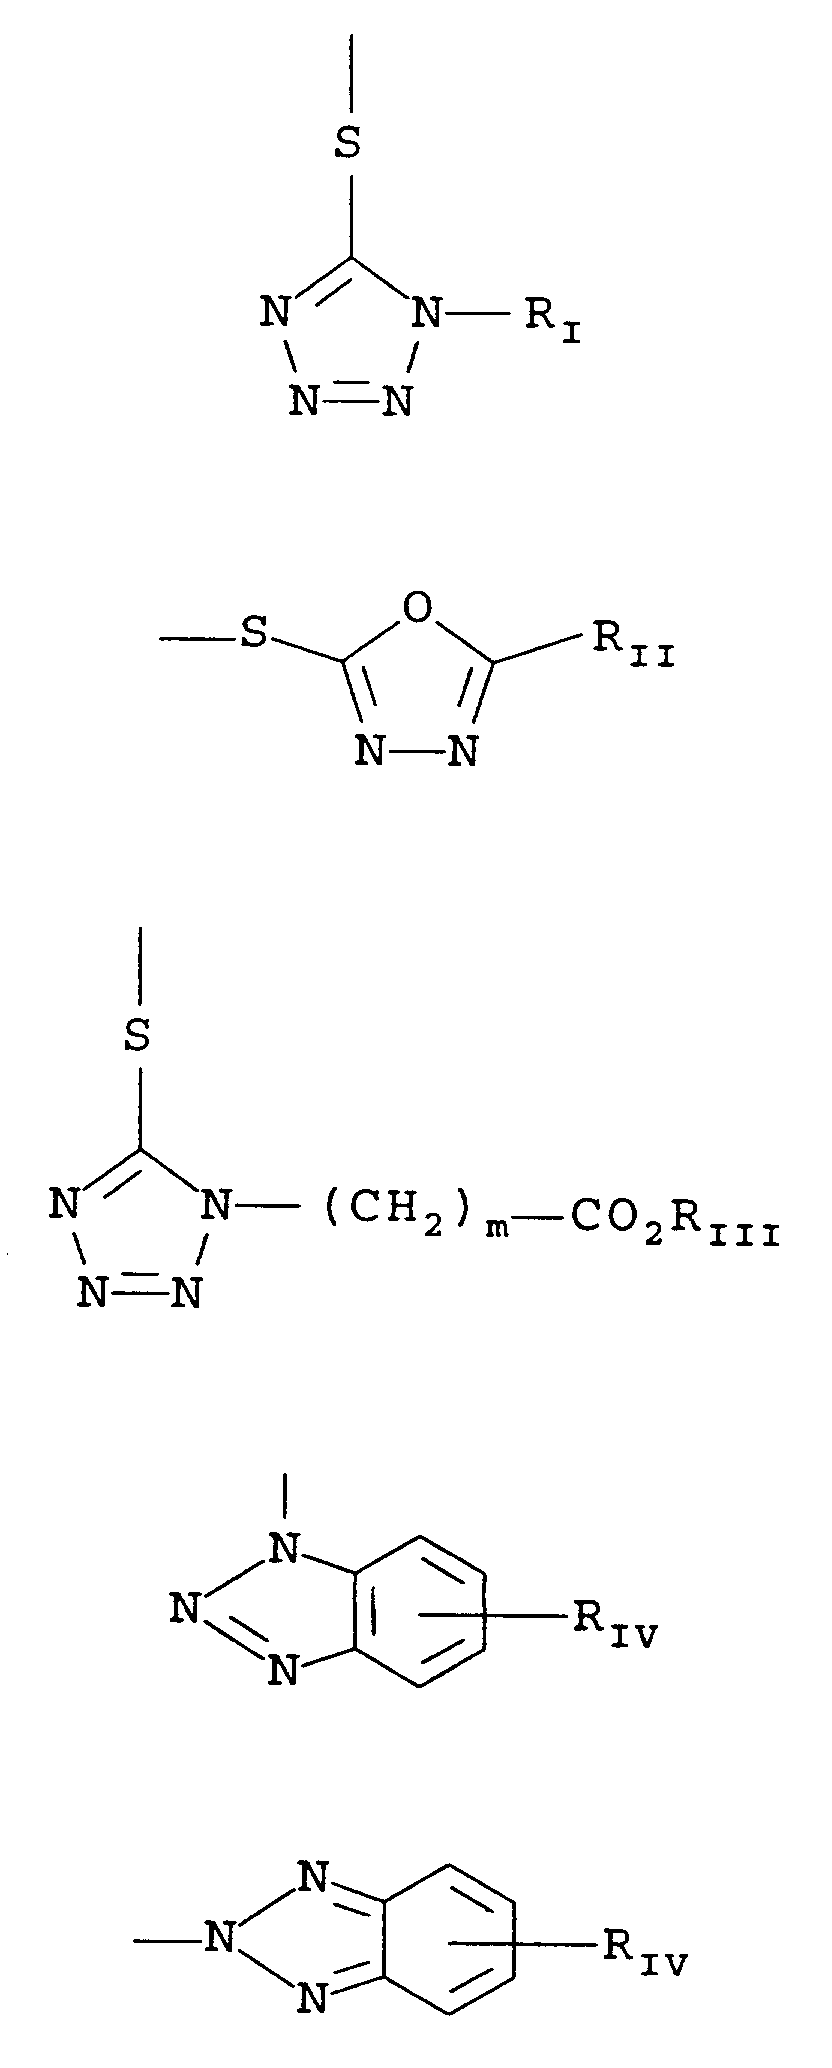 Phenyl Group vs Benzyl Group Benzyl And Phenyl Groups And Said Groups Containing at Least